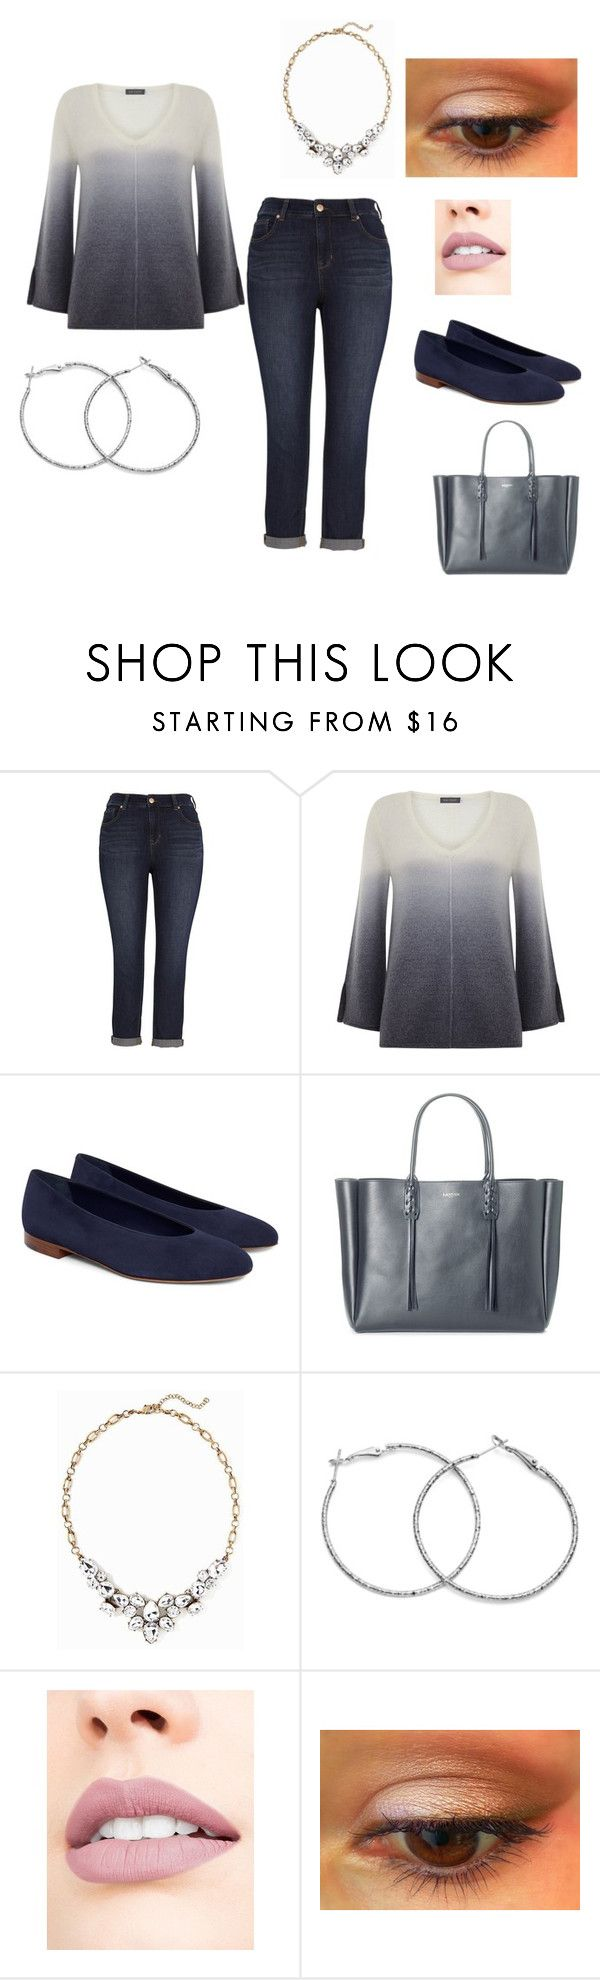 """Casual"" by jen-eye-dig on Polyvore featuring Melissa McCarthy Seven7, Mint Velvet, Lanvin, Old Navy and Jouer"